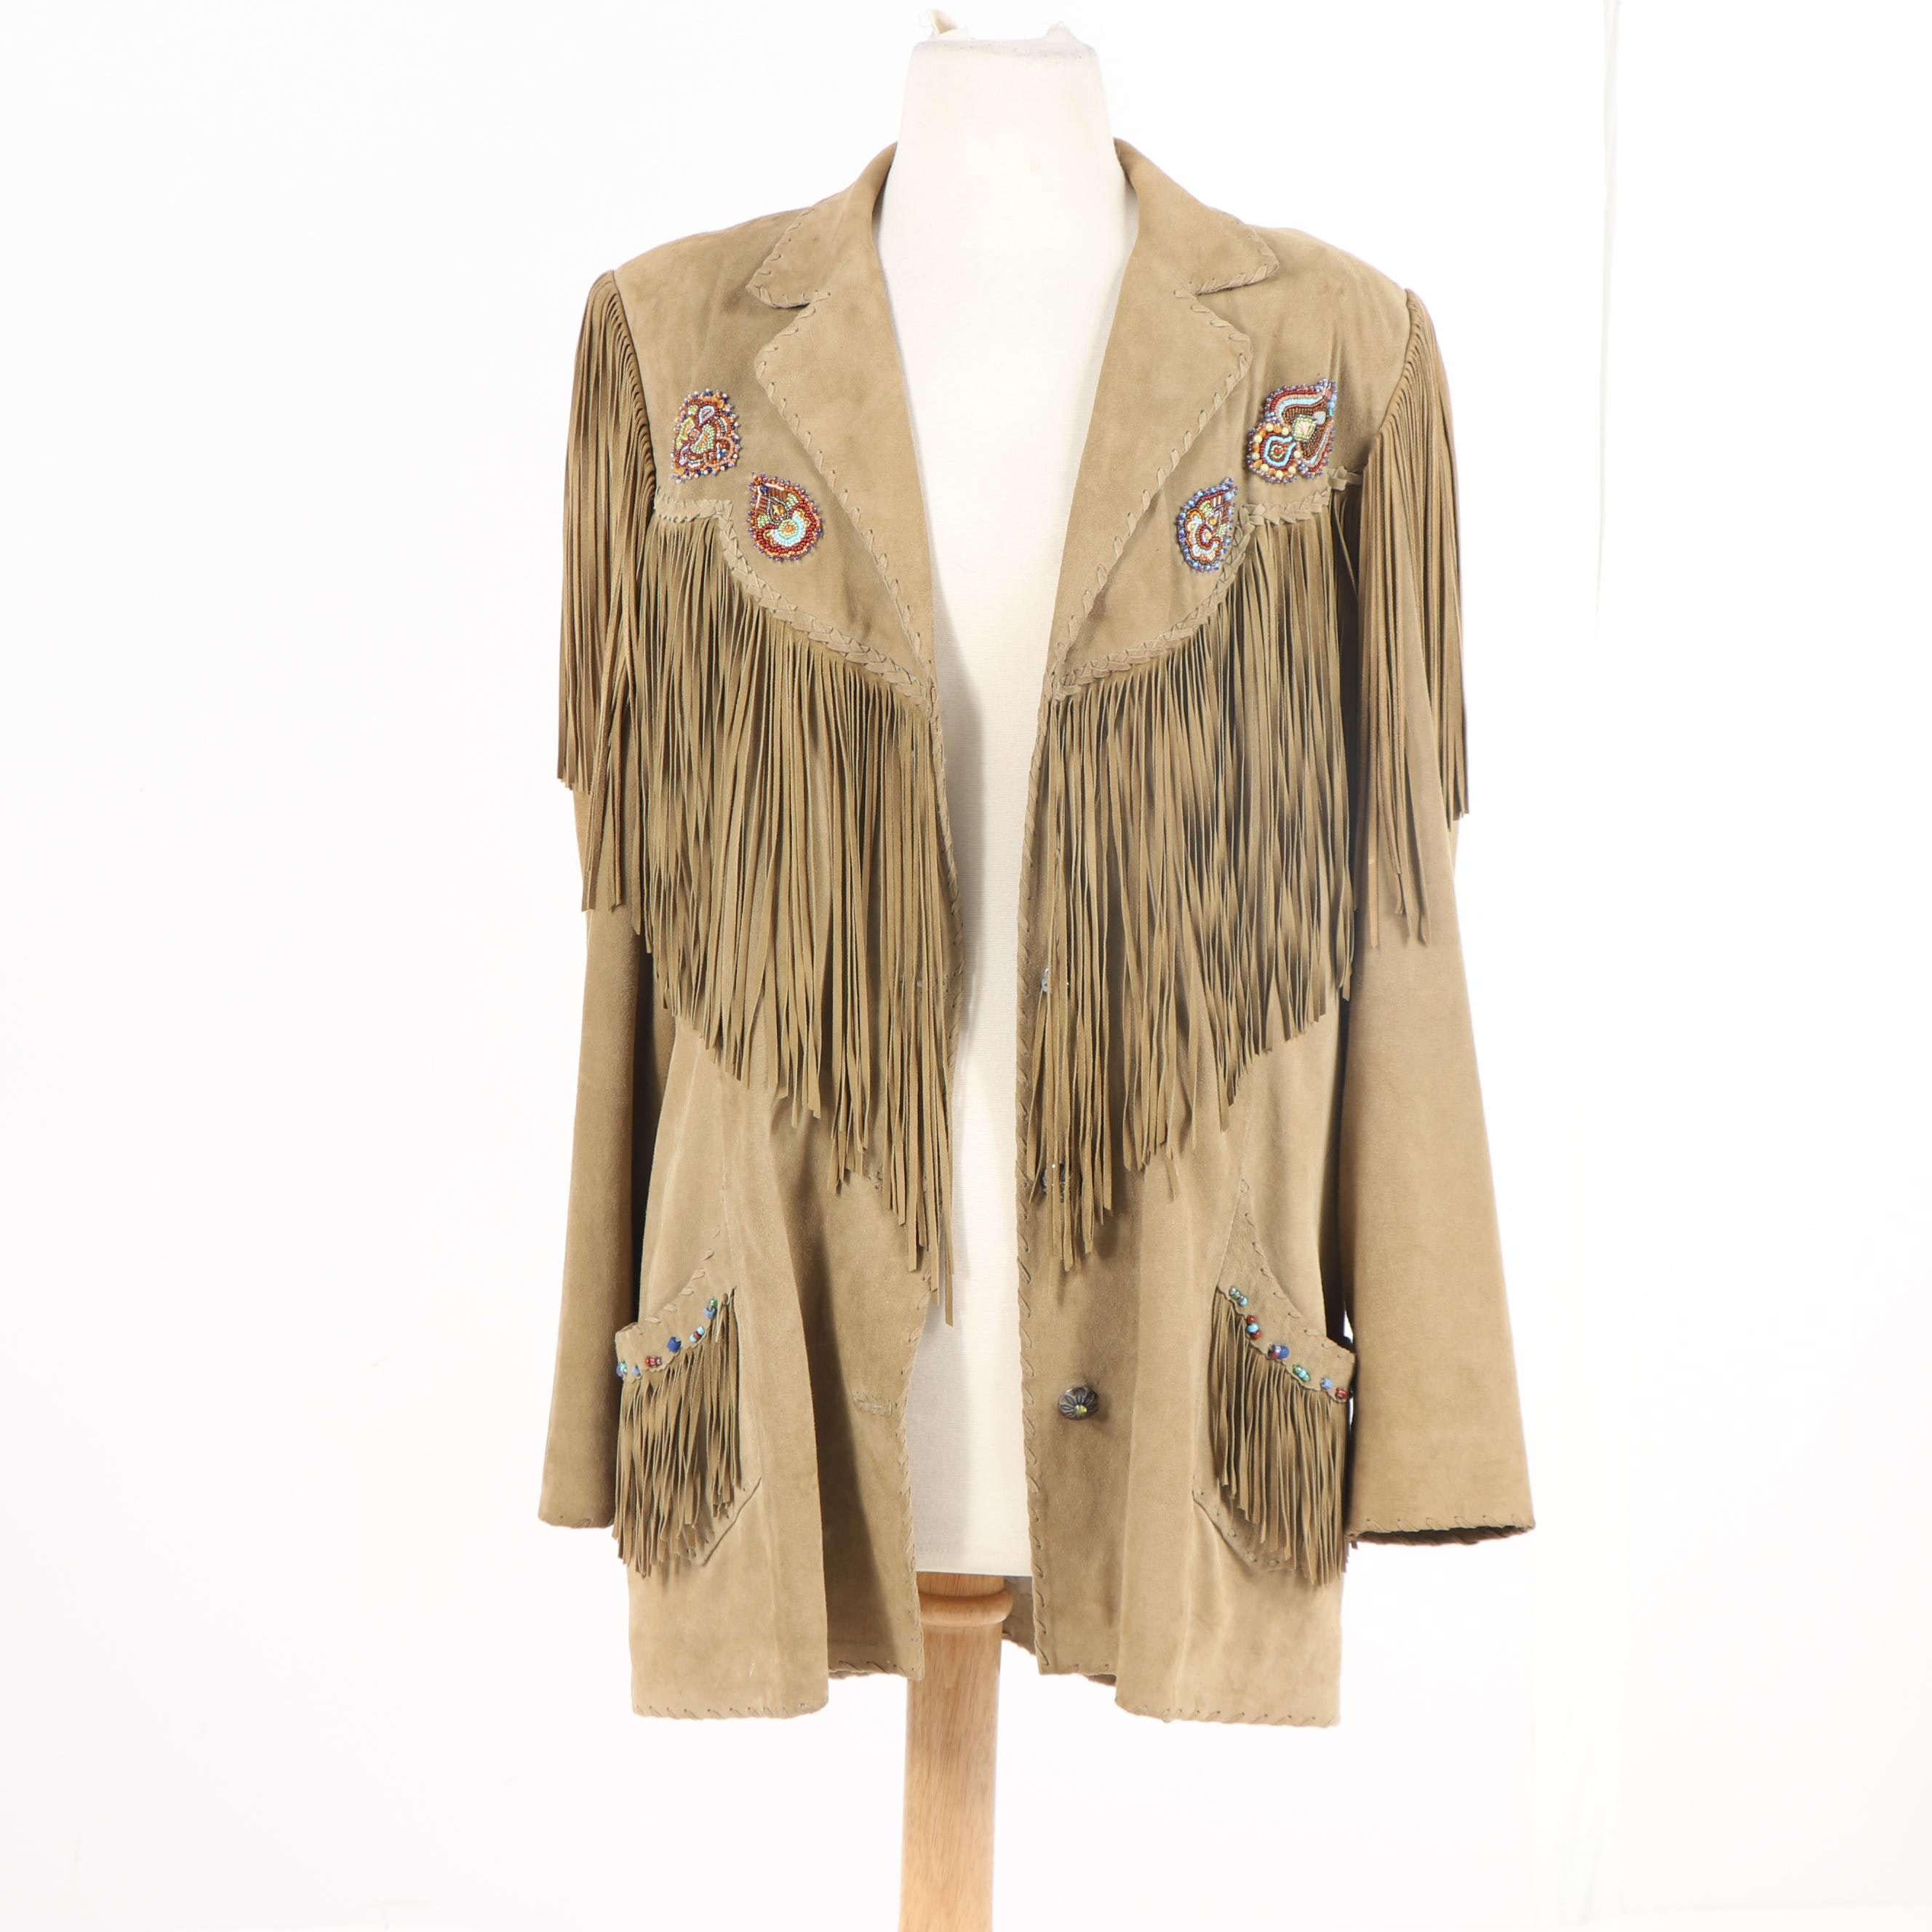 Women's Gossamer Wings Santa Fe Suede Fringe Jacket with Beaded Embellishments